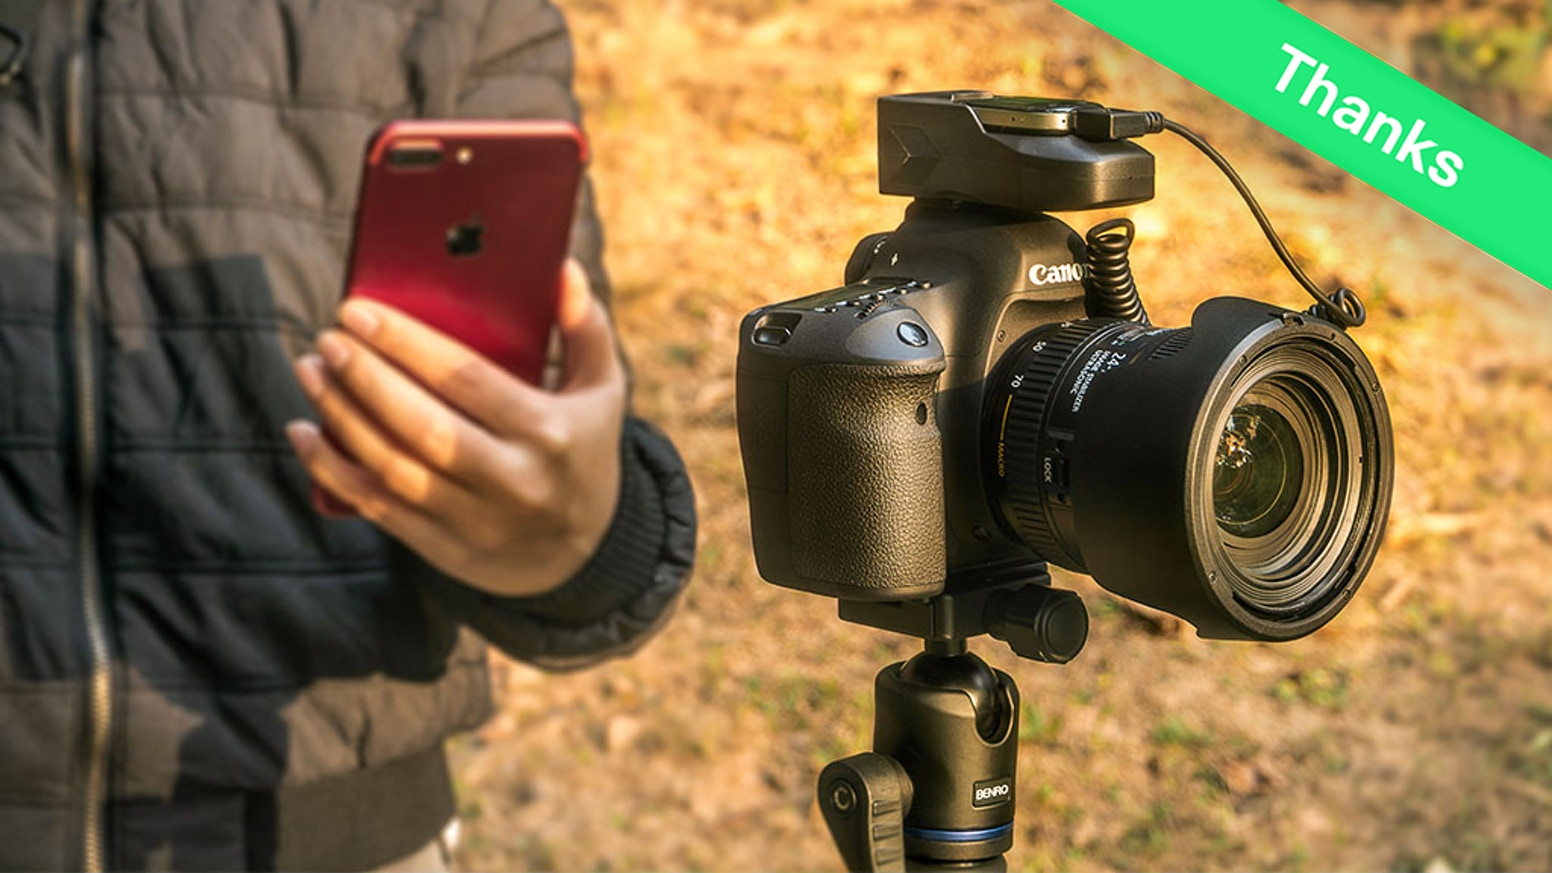 Aurga helps you shoot perfect photos, make timelapse videos, and also serves as a secure personal cloud storage.